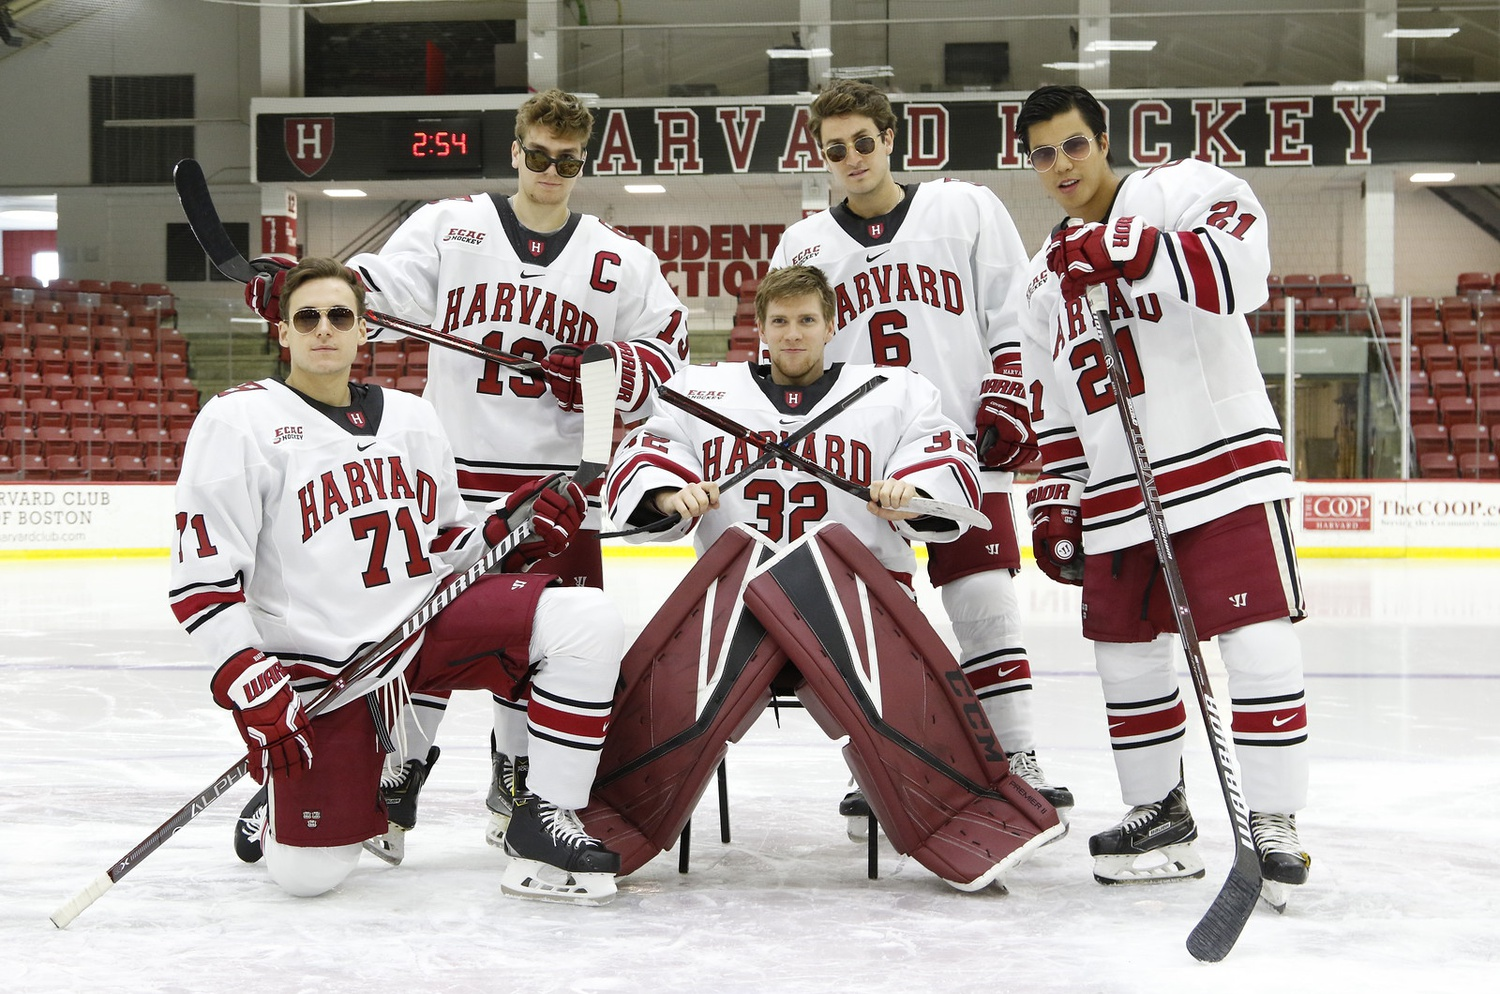 Due to the coronavirus pandemic, Harvard's five seniors may not have received the closure they expected. Nevertheless, the class leaves behind an impressive four-year contribution to the program's on-ice winning and off-ice culture.